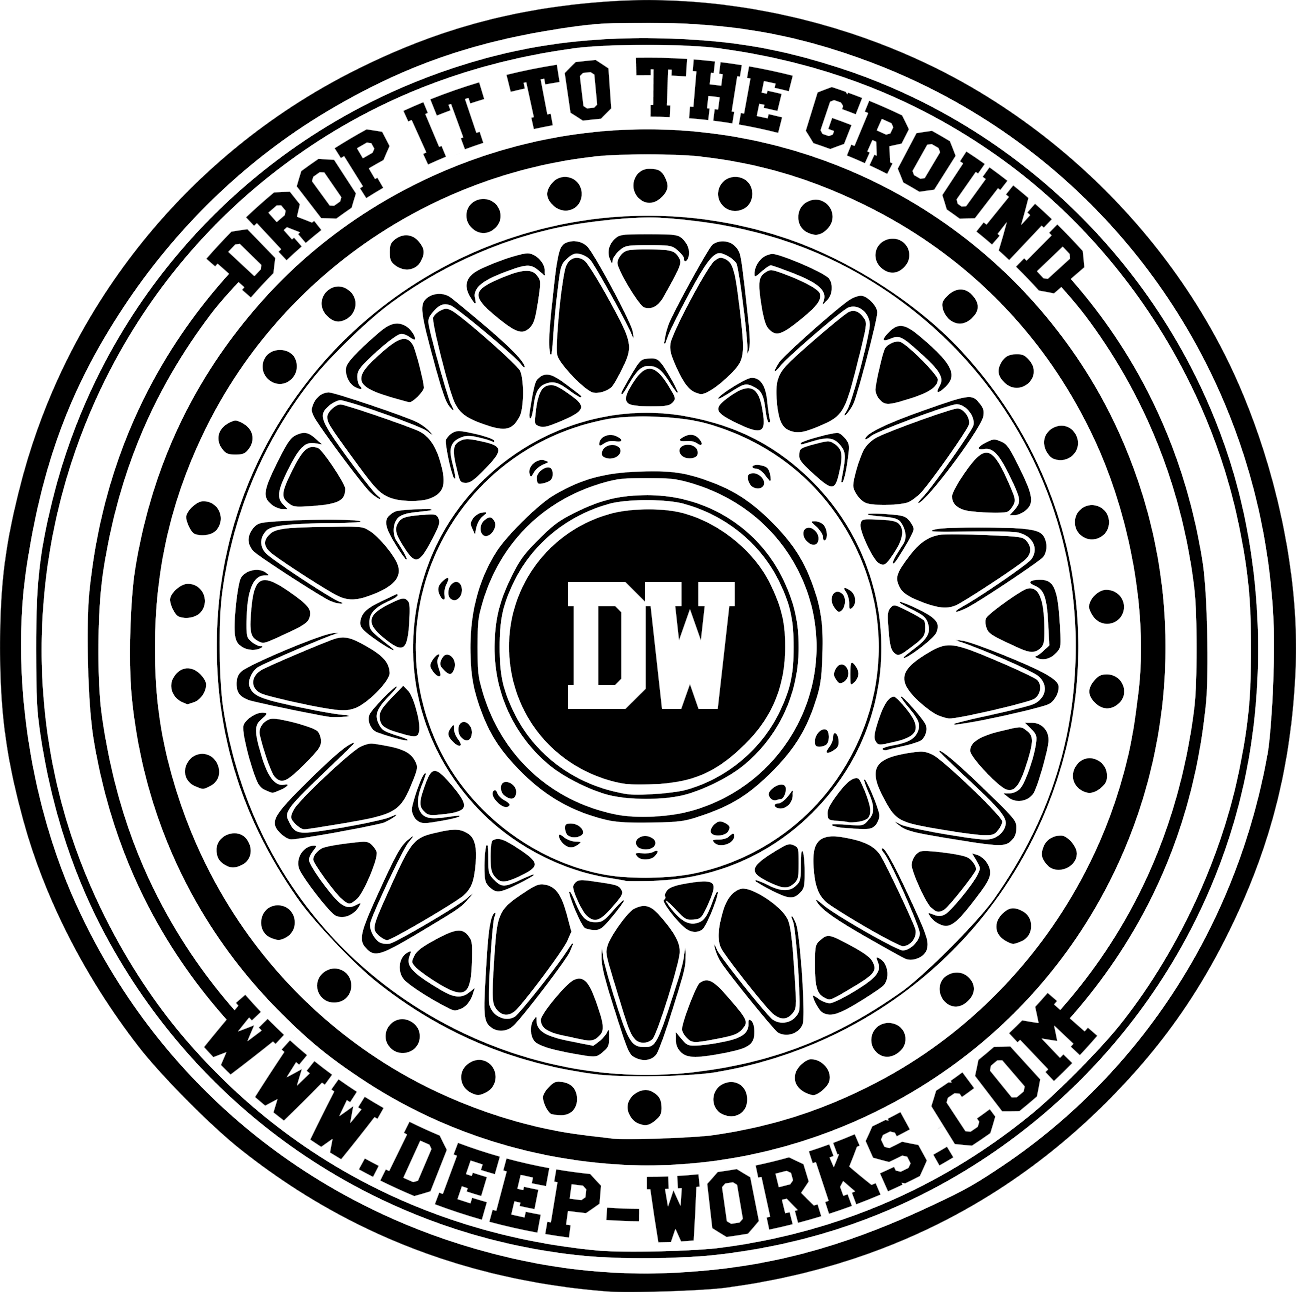 Deep-Works - Drop it to the Ground!-Logo